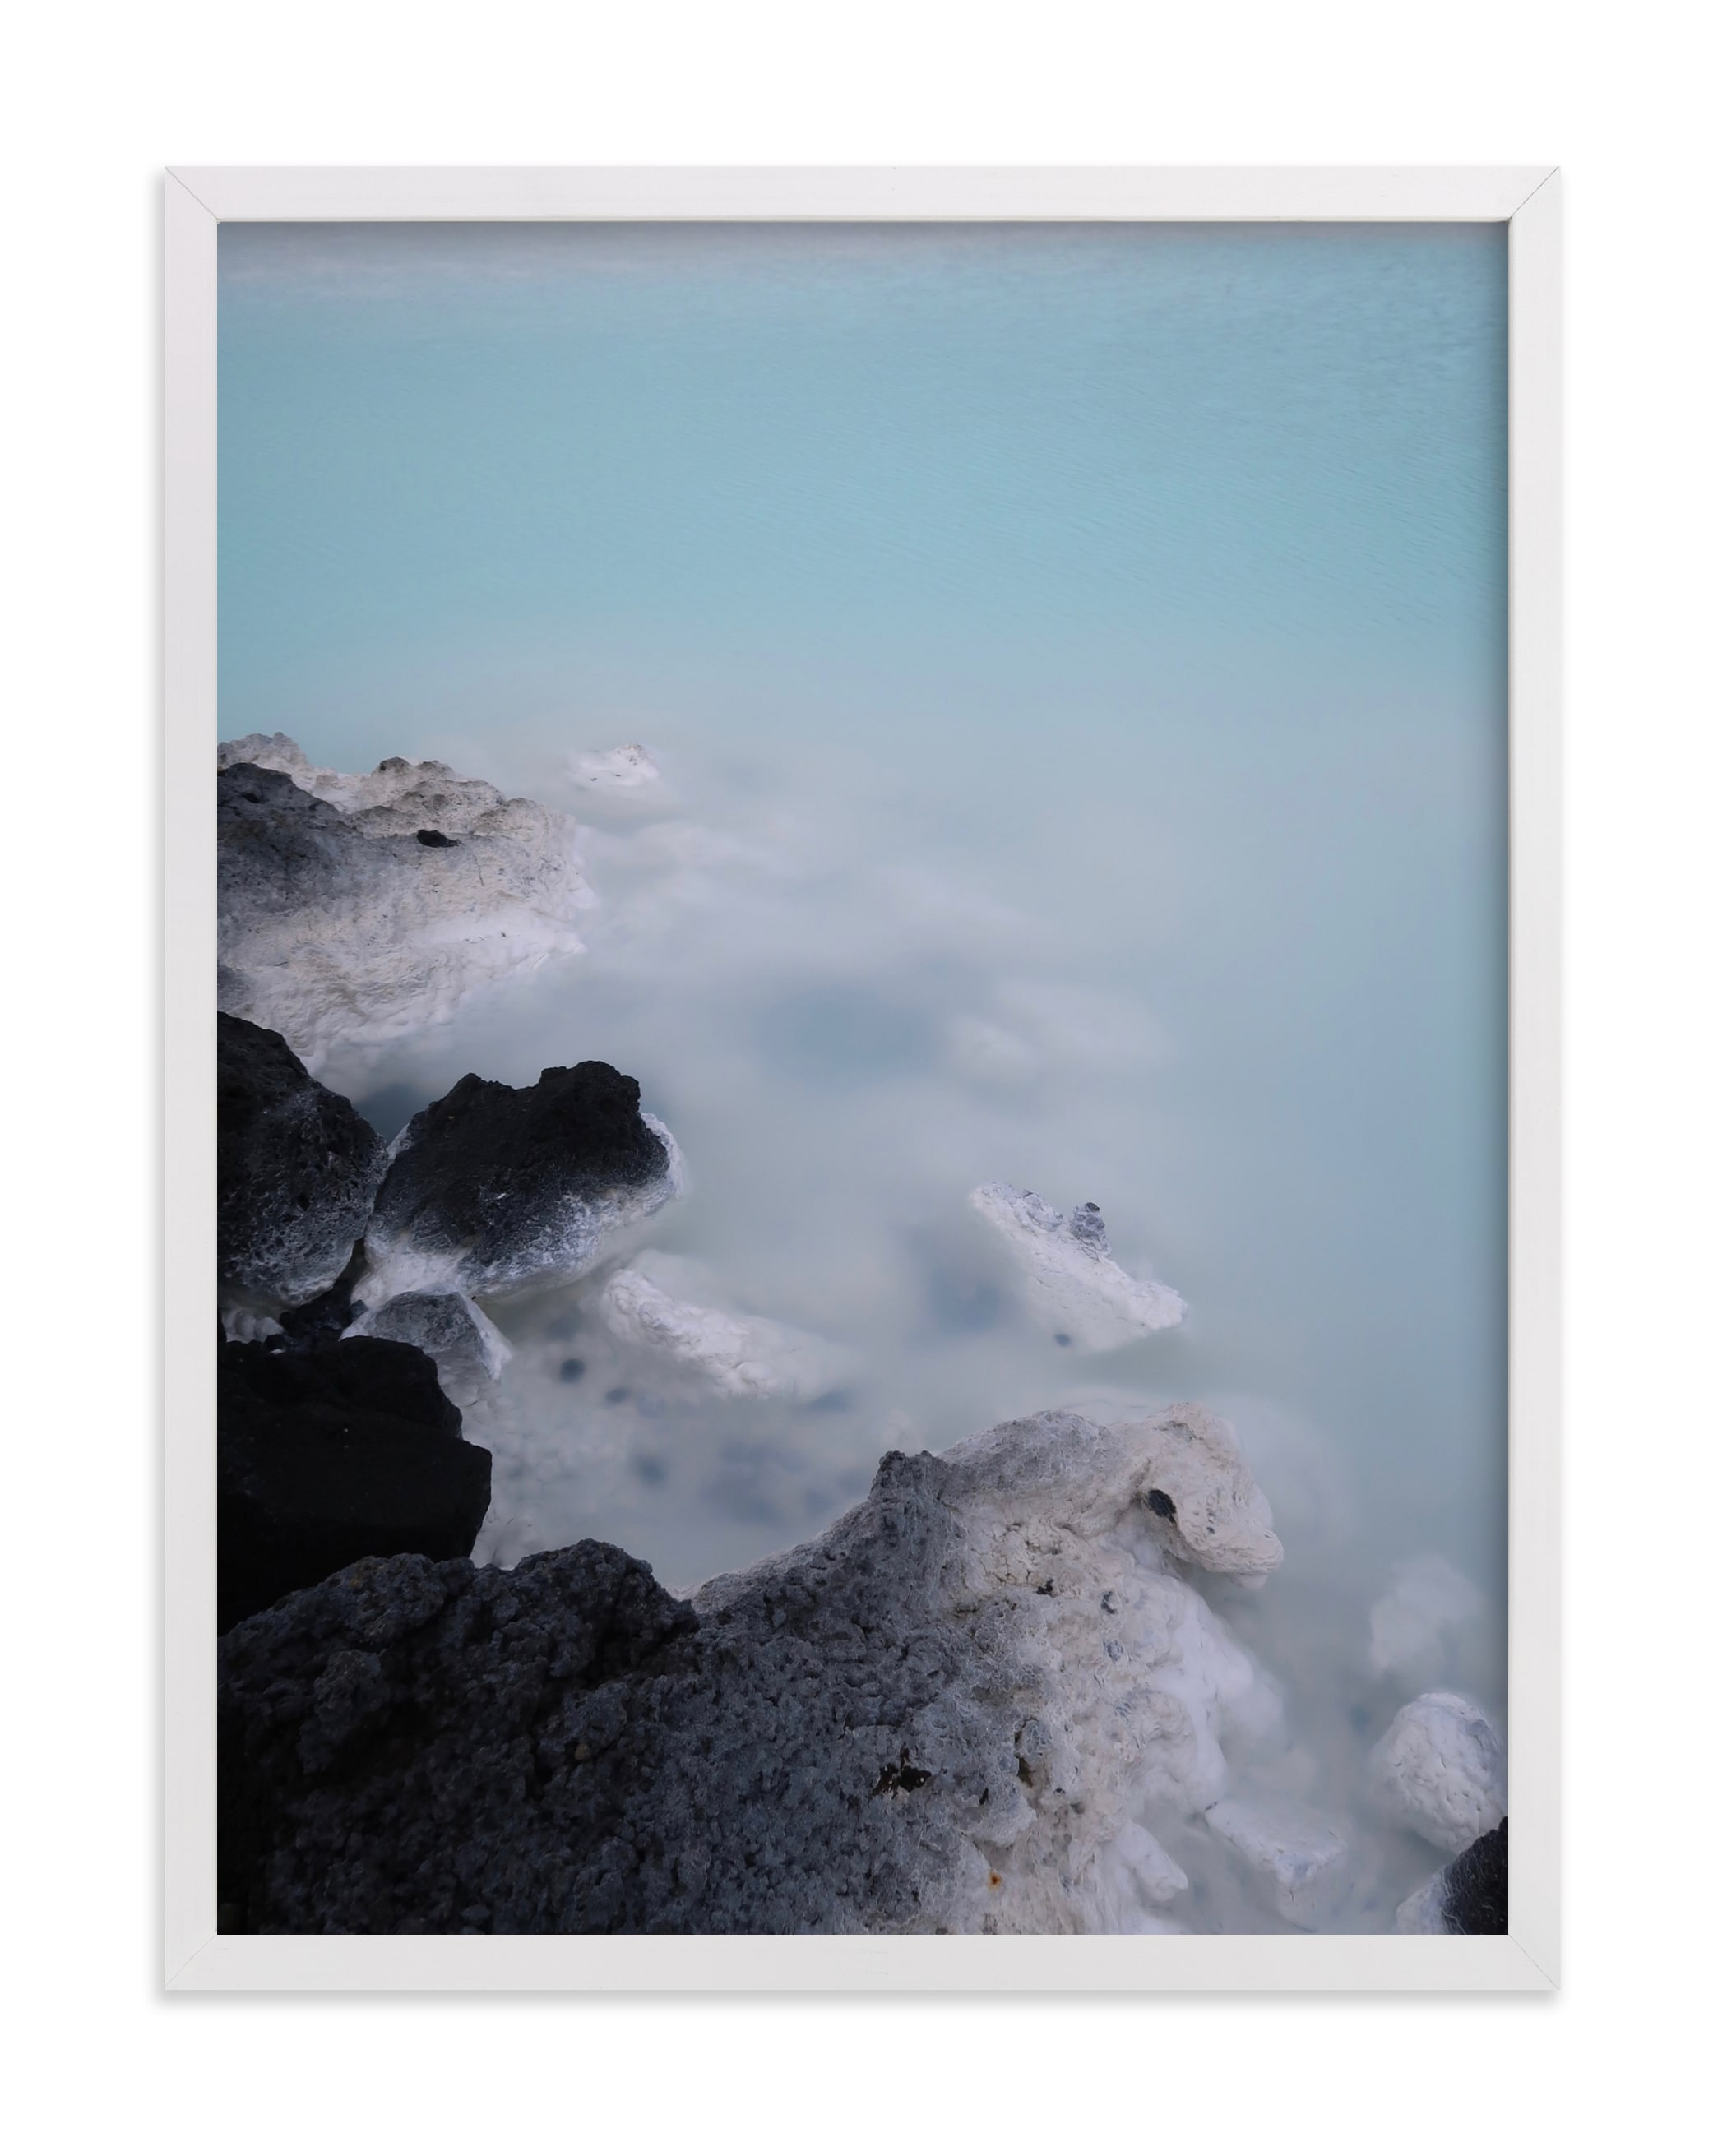 This is a blue art by Claire Duda called Minerals #2.